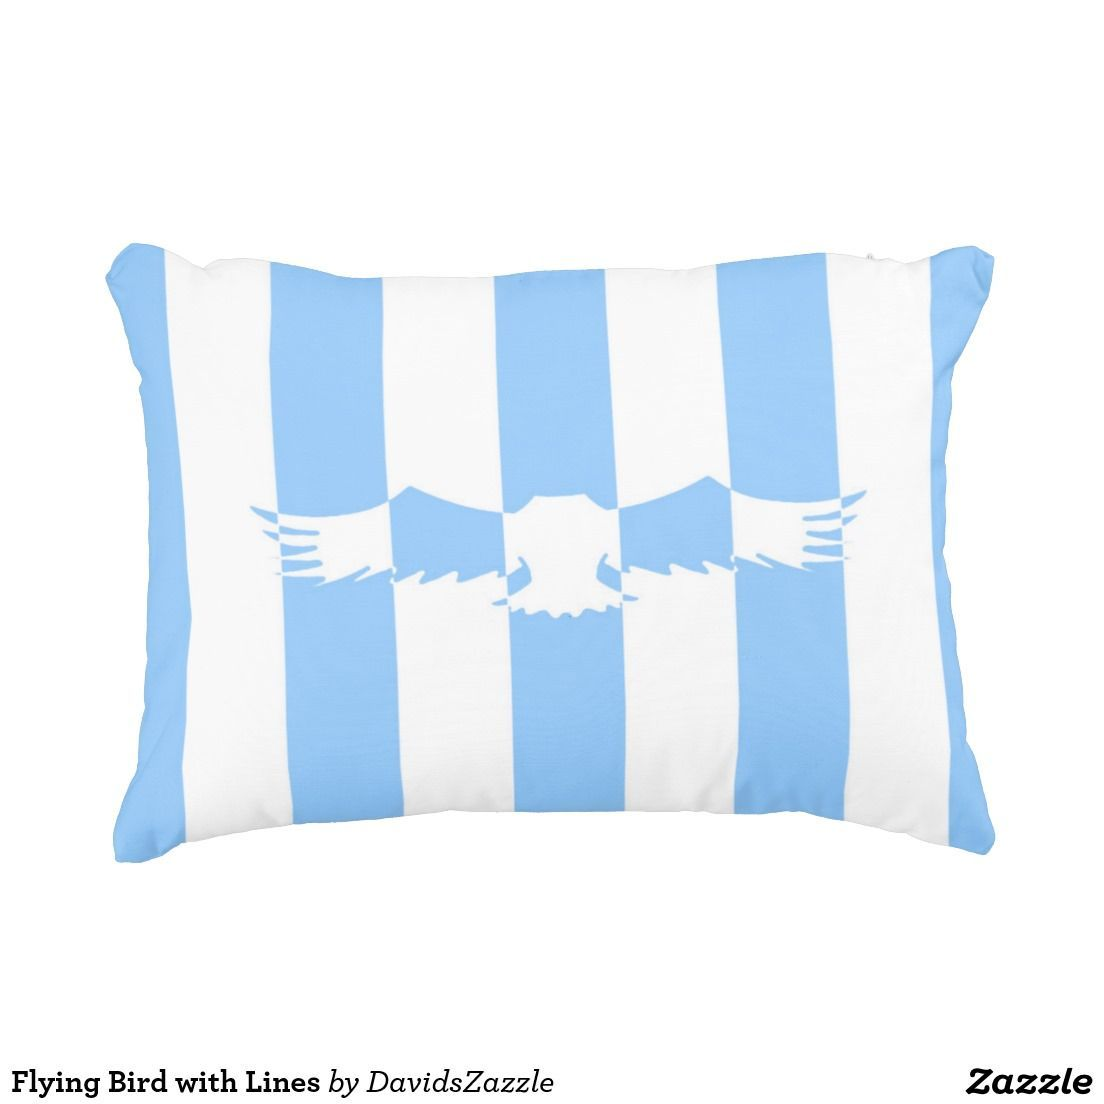 Flying Bird with Lines Throw Pillow Available on more products! Use the design name to search my Zazzle Products Page. | realistic flying bird tattoos #eagle #bird #flight #flying #fly #feather #wings #blue #sky #take #white #animal #nature #planet #earth #illustration #silhouette #chic #contemporary #buy #sale #zazzle #throw #pillow #home #decor #accent #bedroom #living #room #apartment #den